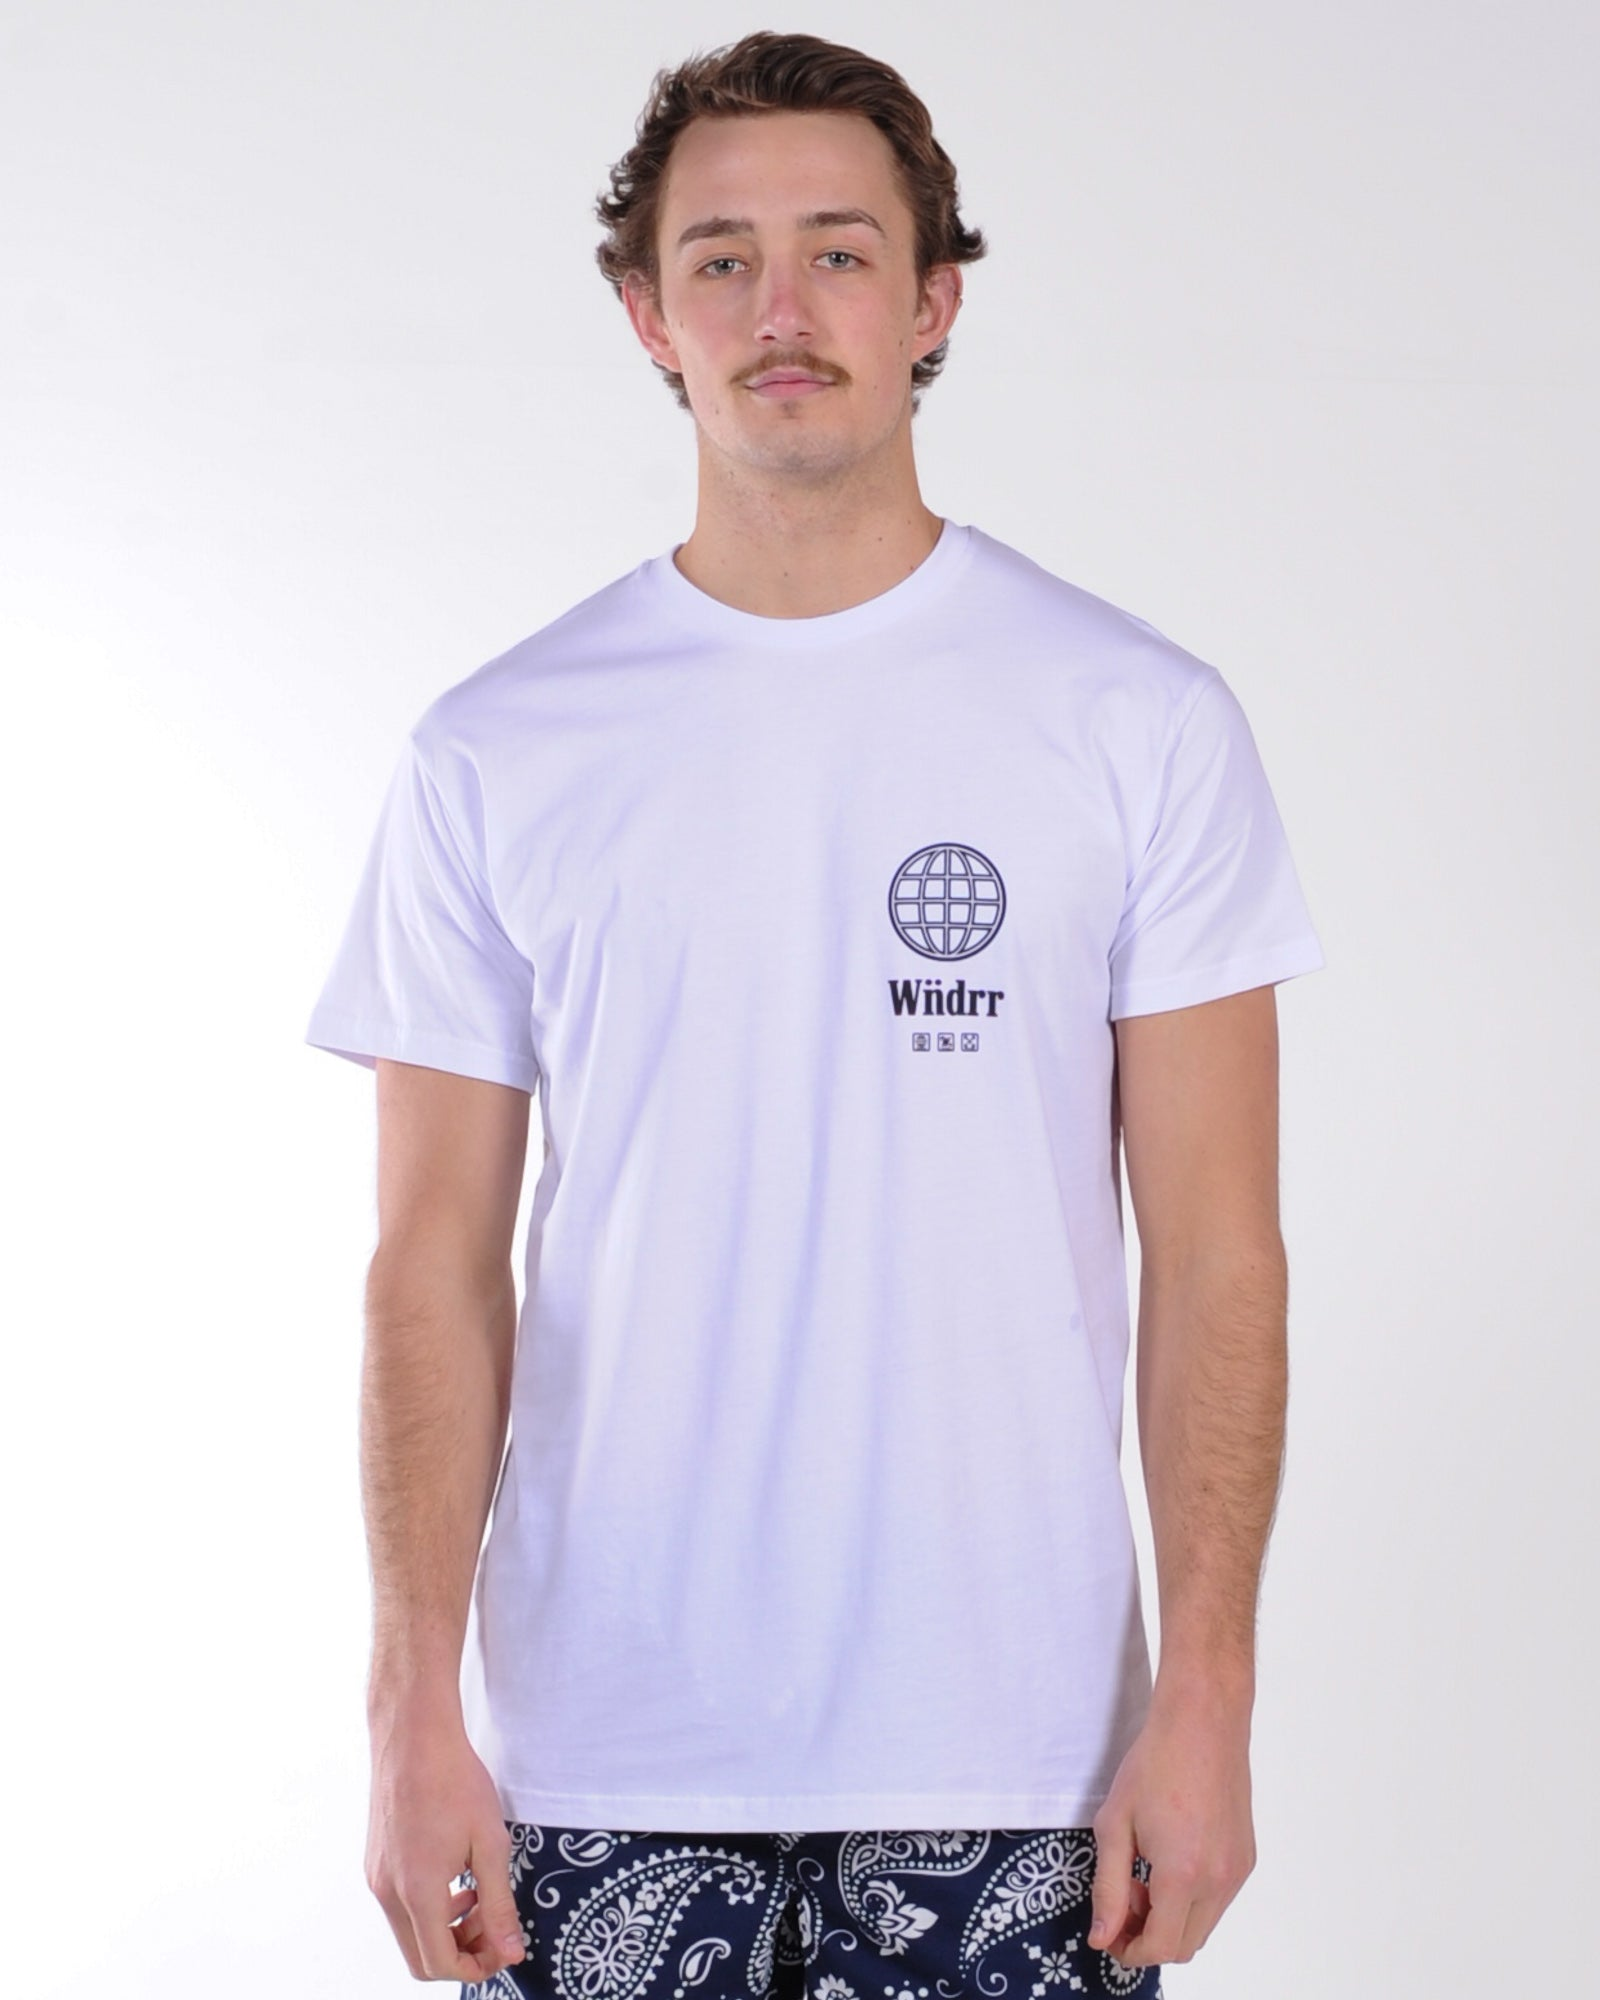 Wndrr Orbit Custom Fit Tee - White